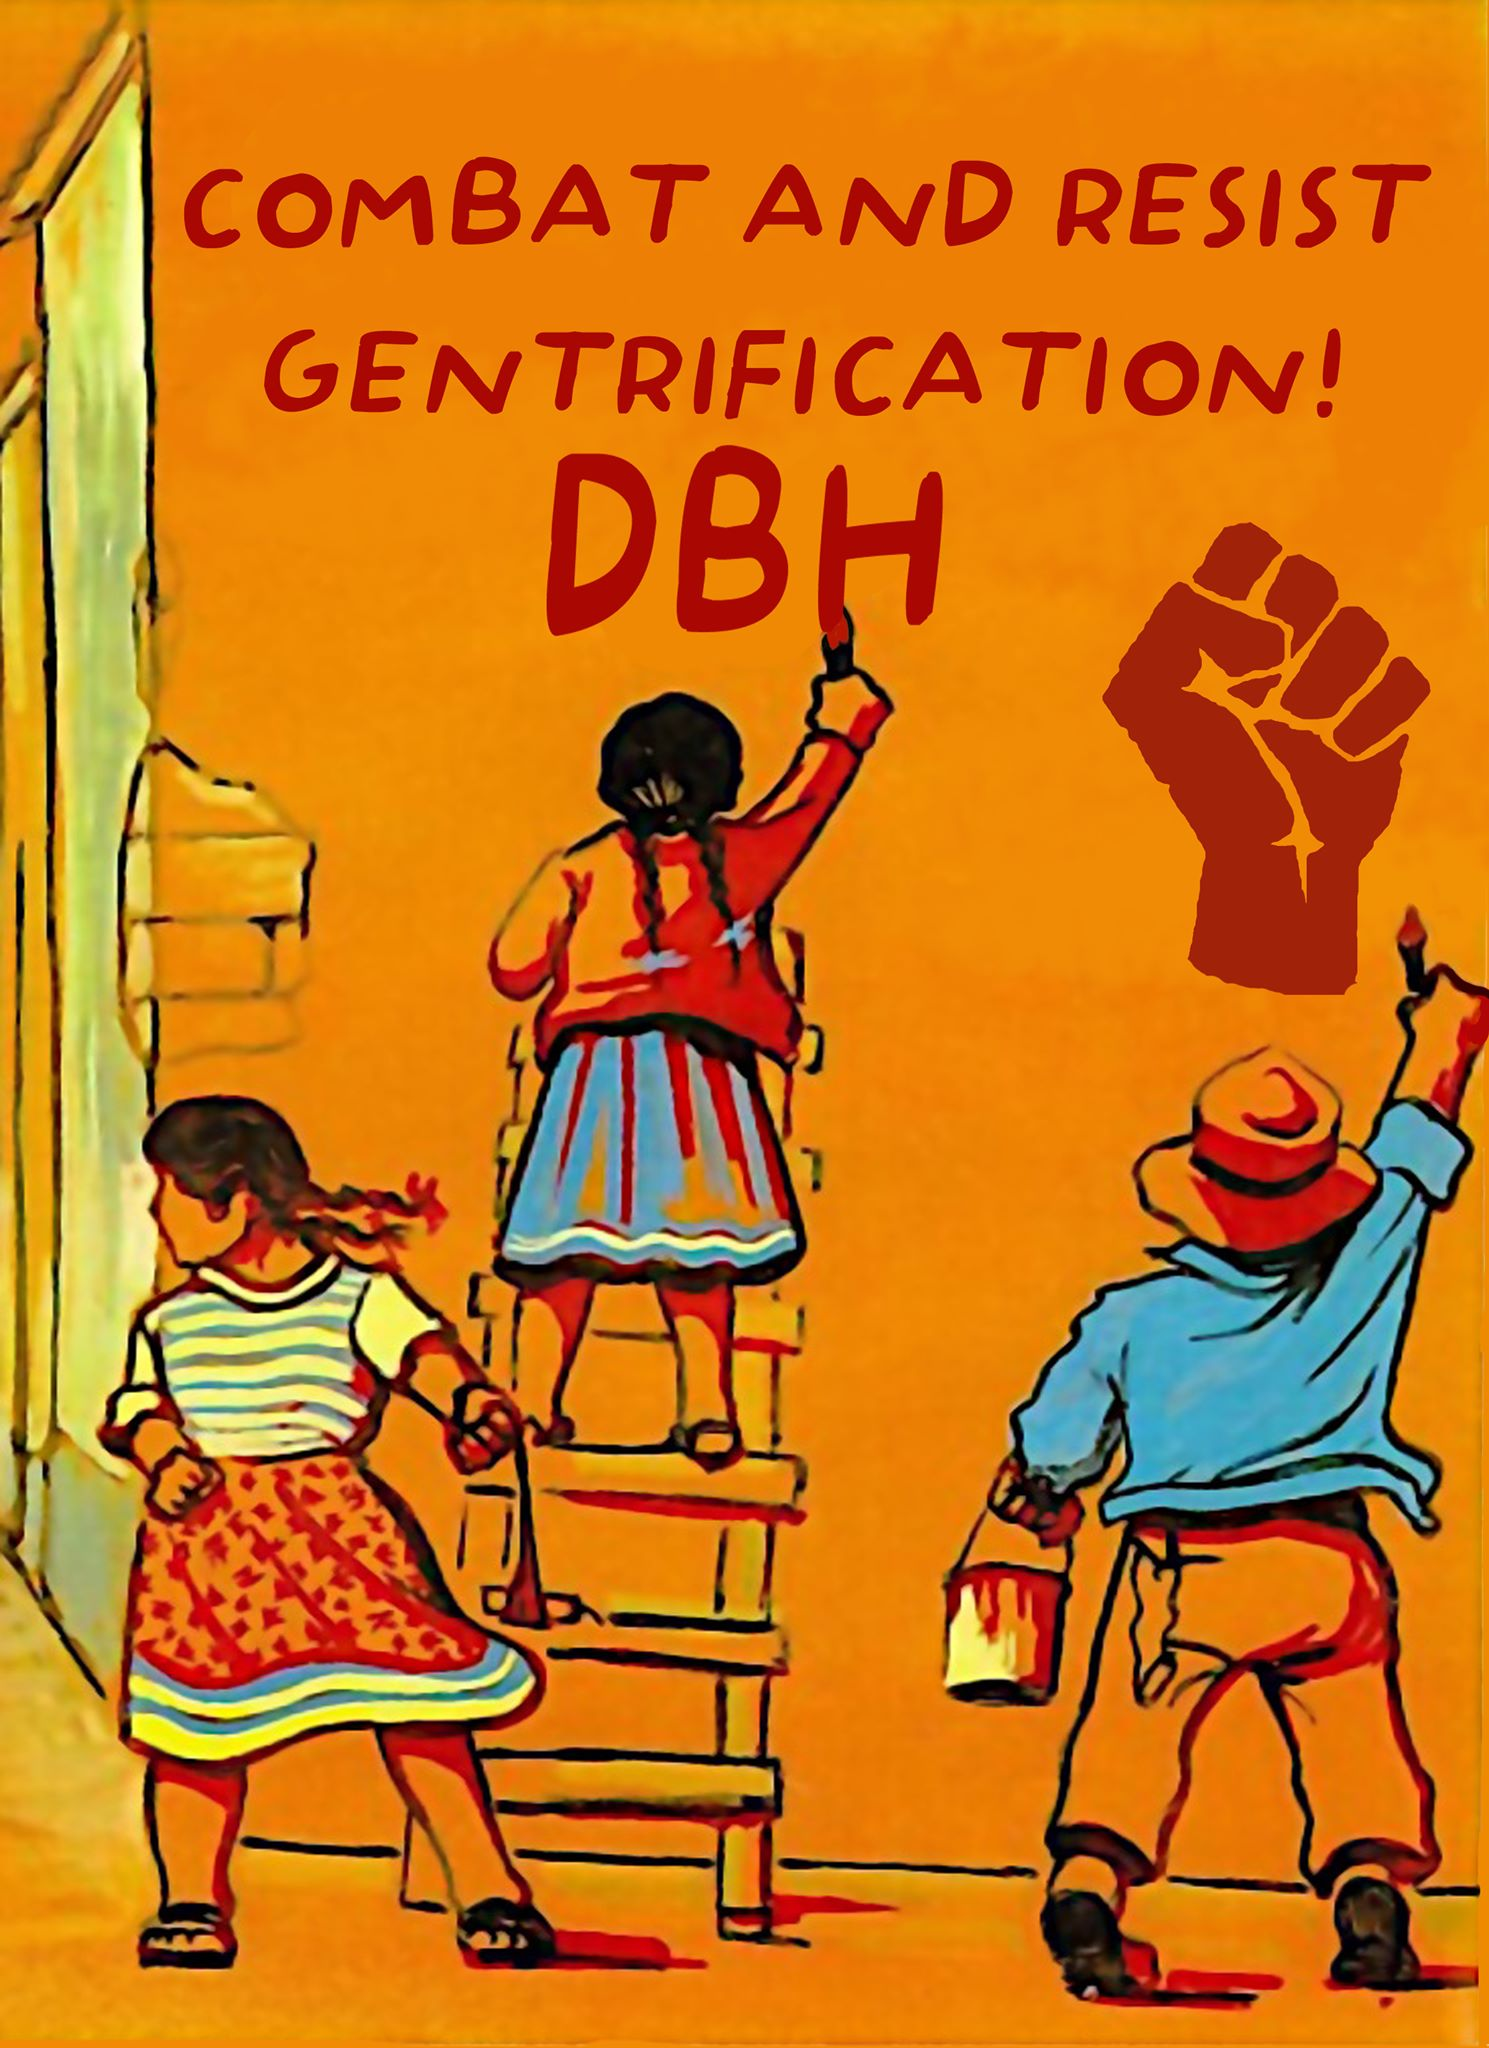 COMBAT AND RESIST GENTRIFICATION! DBH